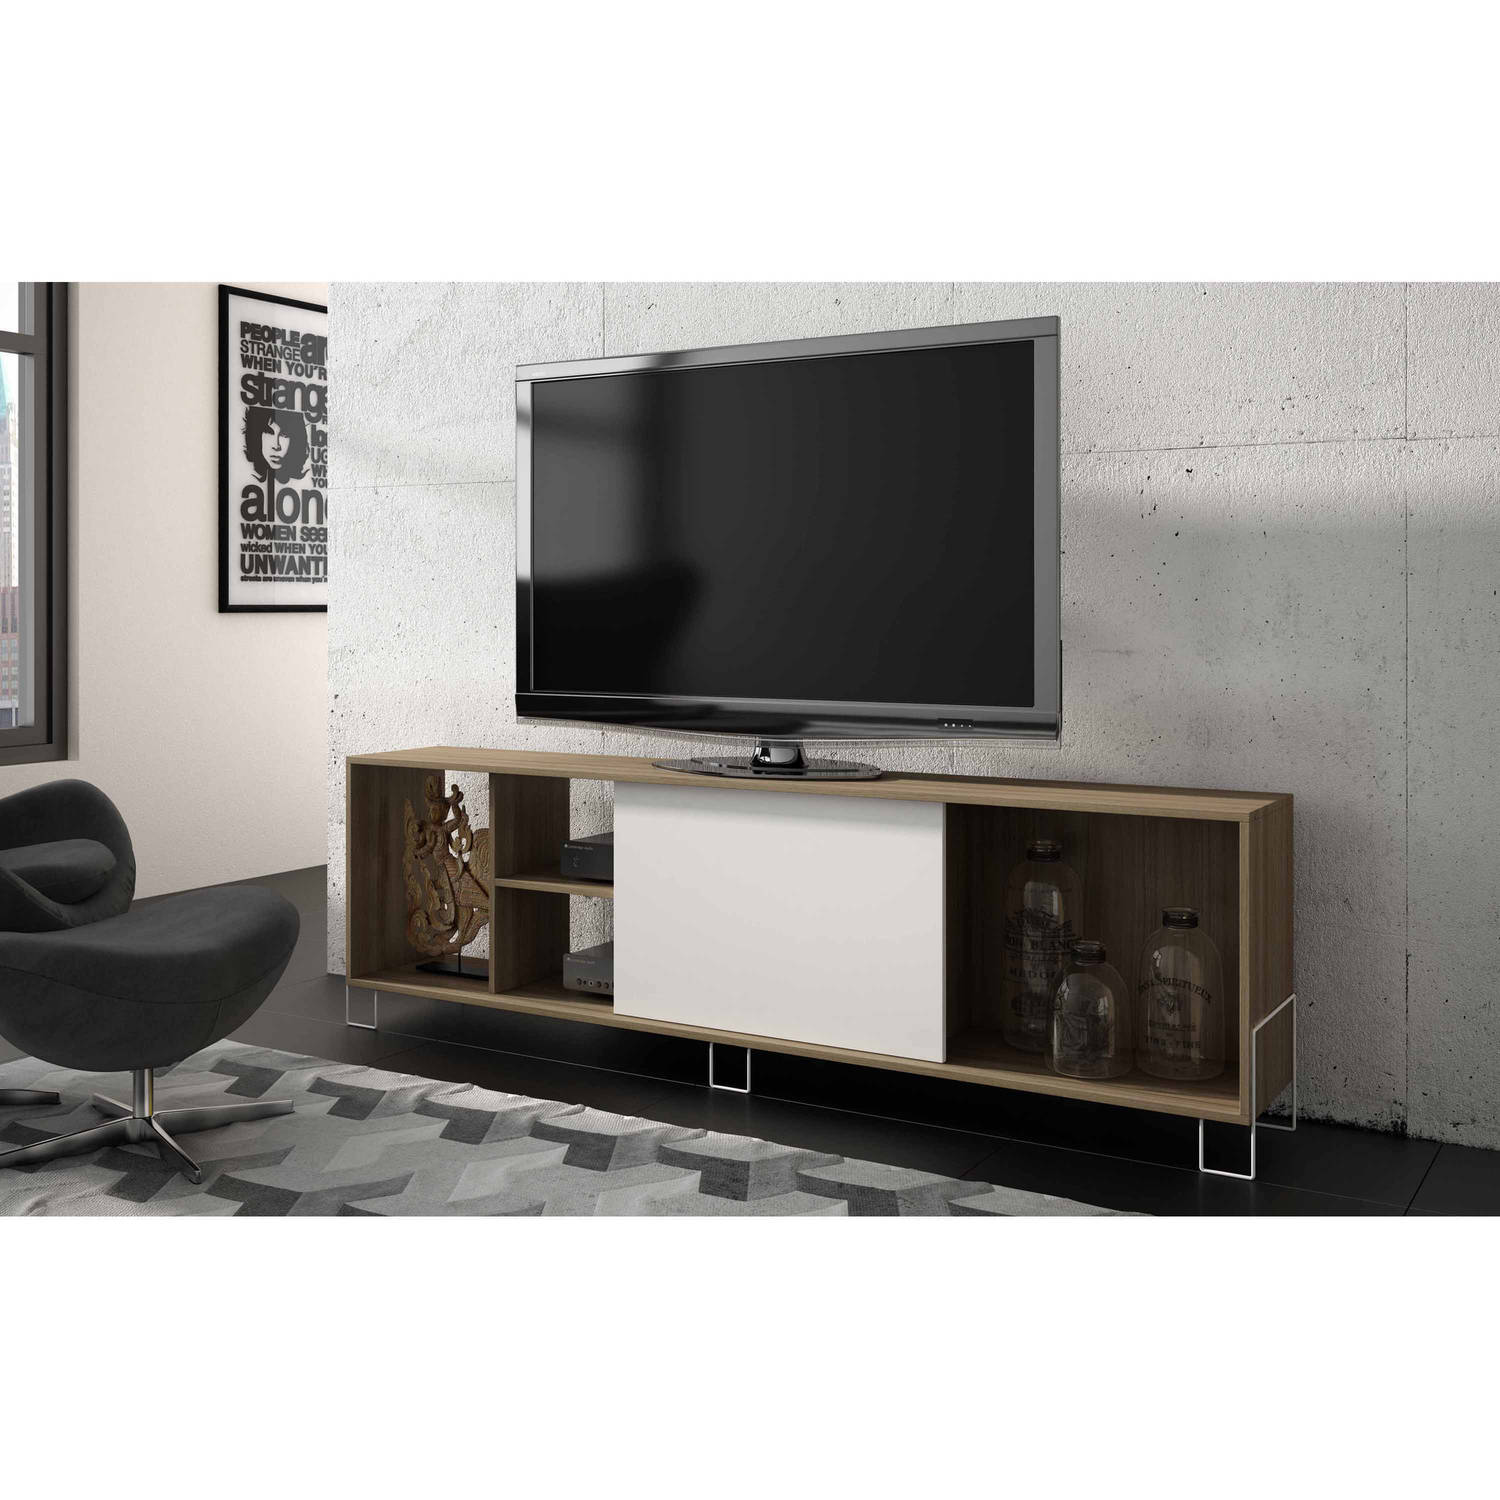 Mendocino Spruce Eye Catching Tv Stand 2 0 For Tvs Up To 46  # Console Meuble Tv